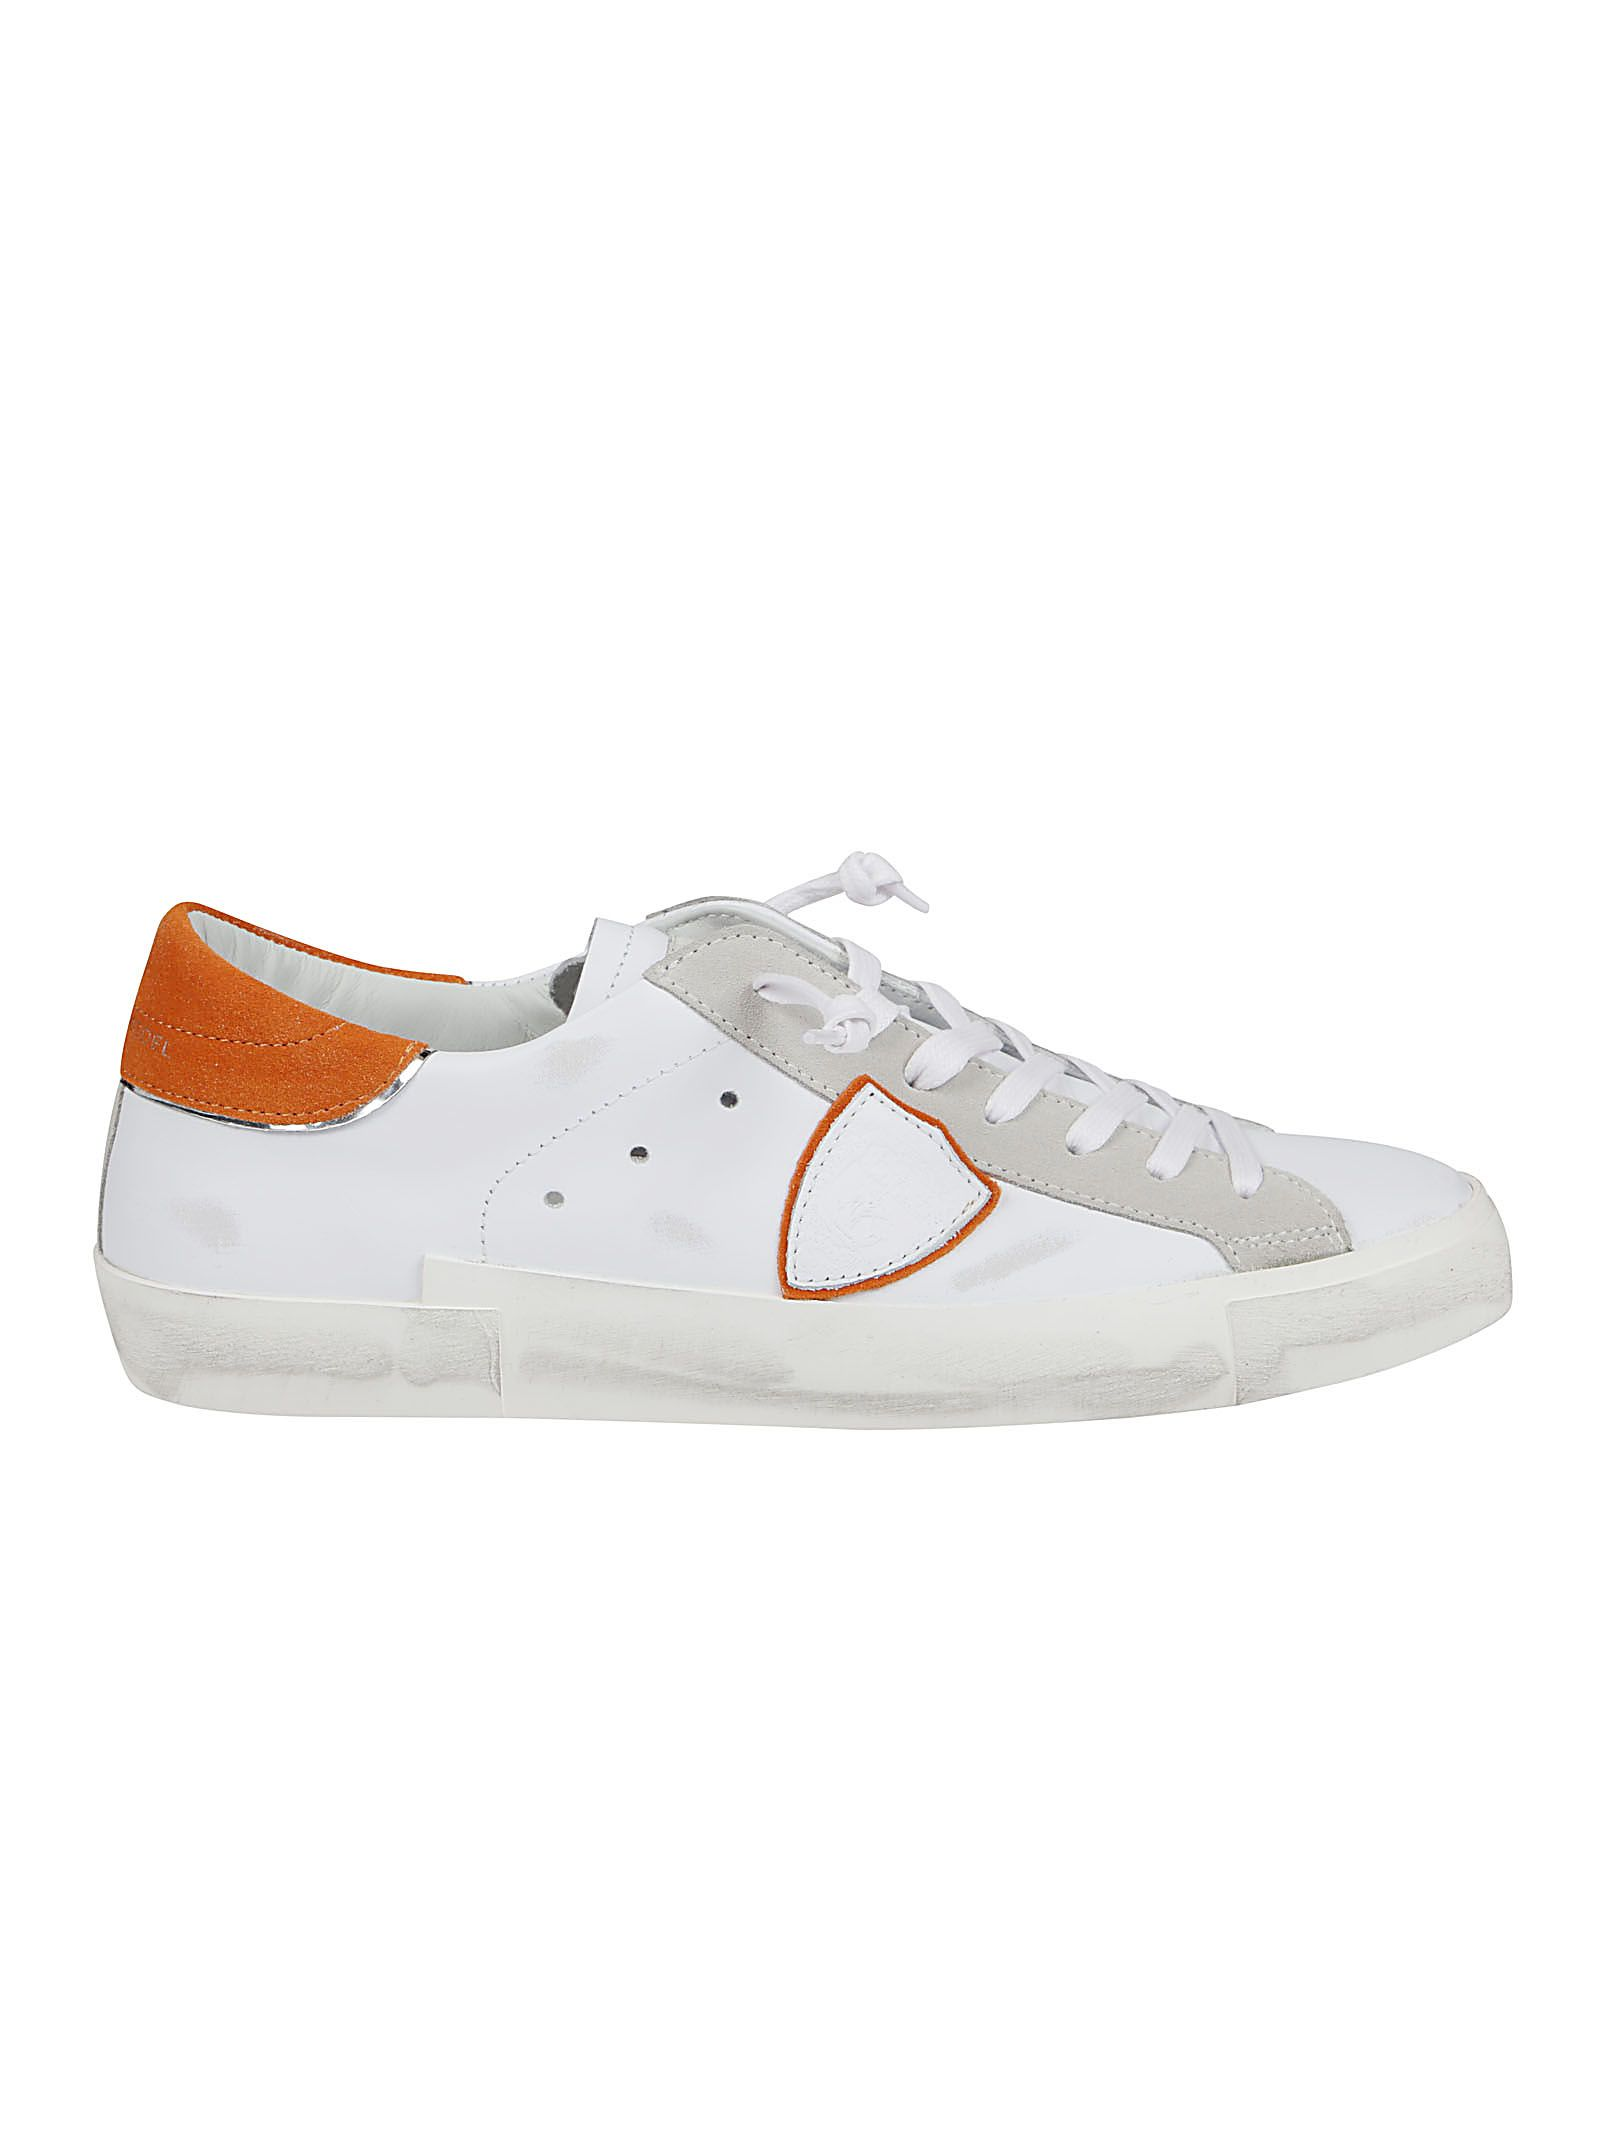 Philippe Model Sneakers PHILIPPE MODEL MEN'S PRLUVX21 WHITE OTHER MATERIALS SNEAKERS